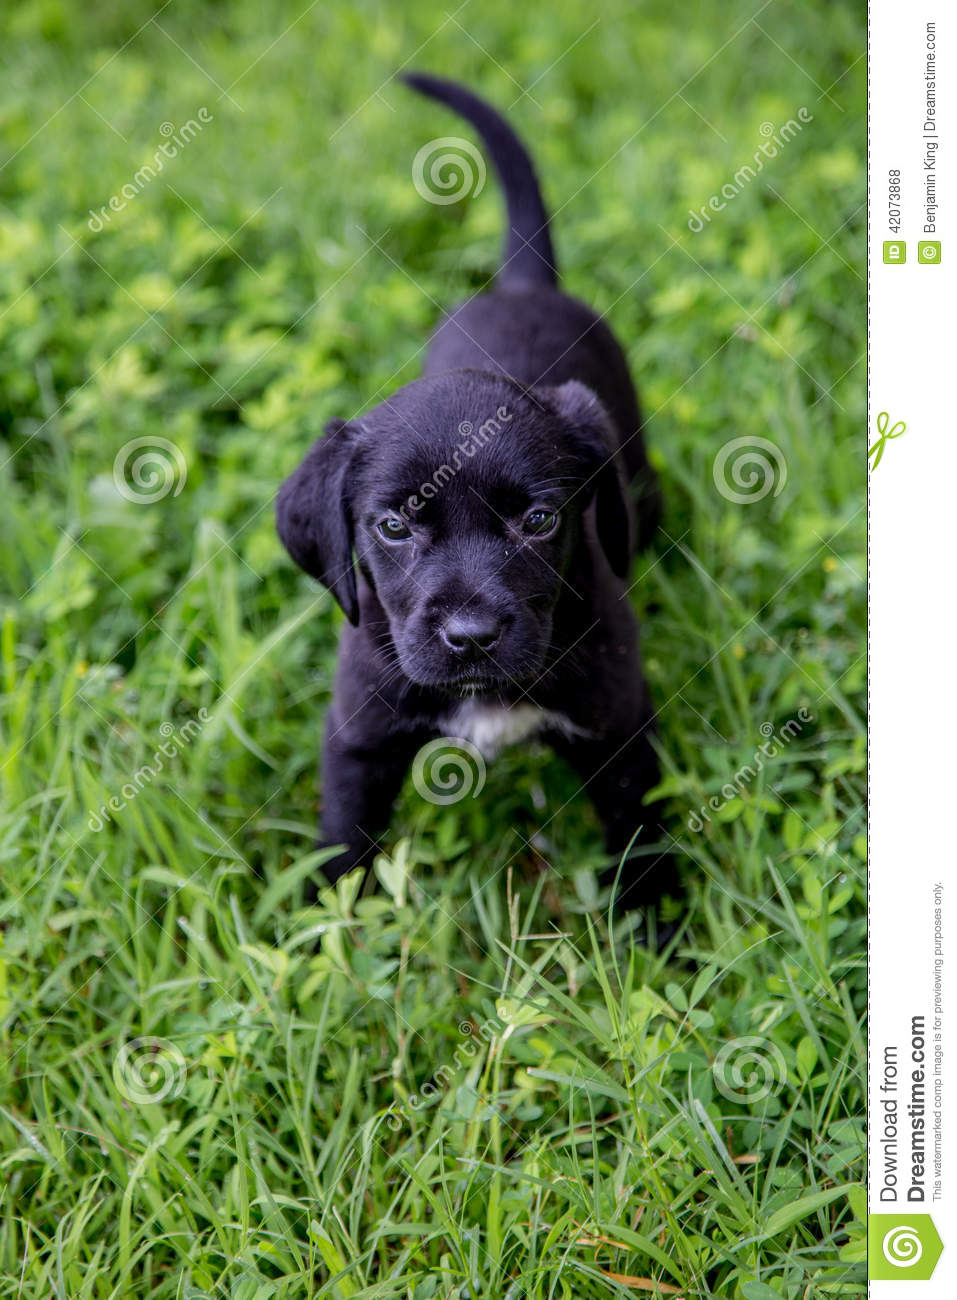 Lab Puppies Back Photos Free Royalty Free Stock Photos From Dreamstime